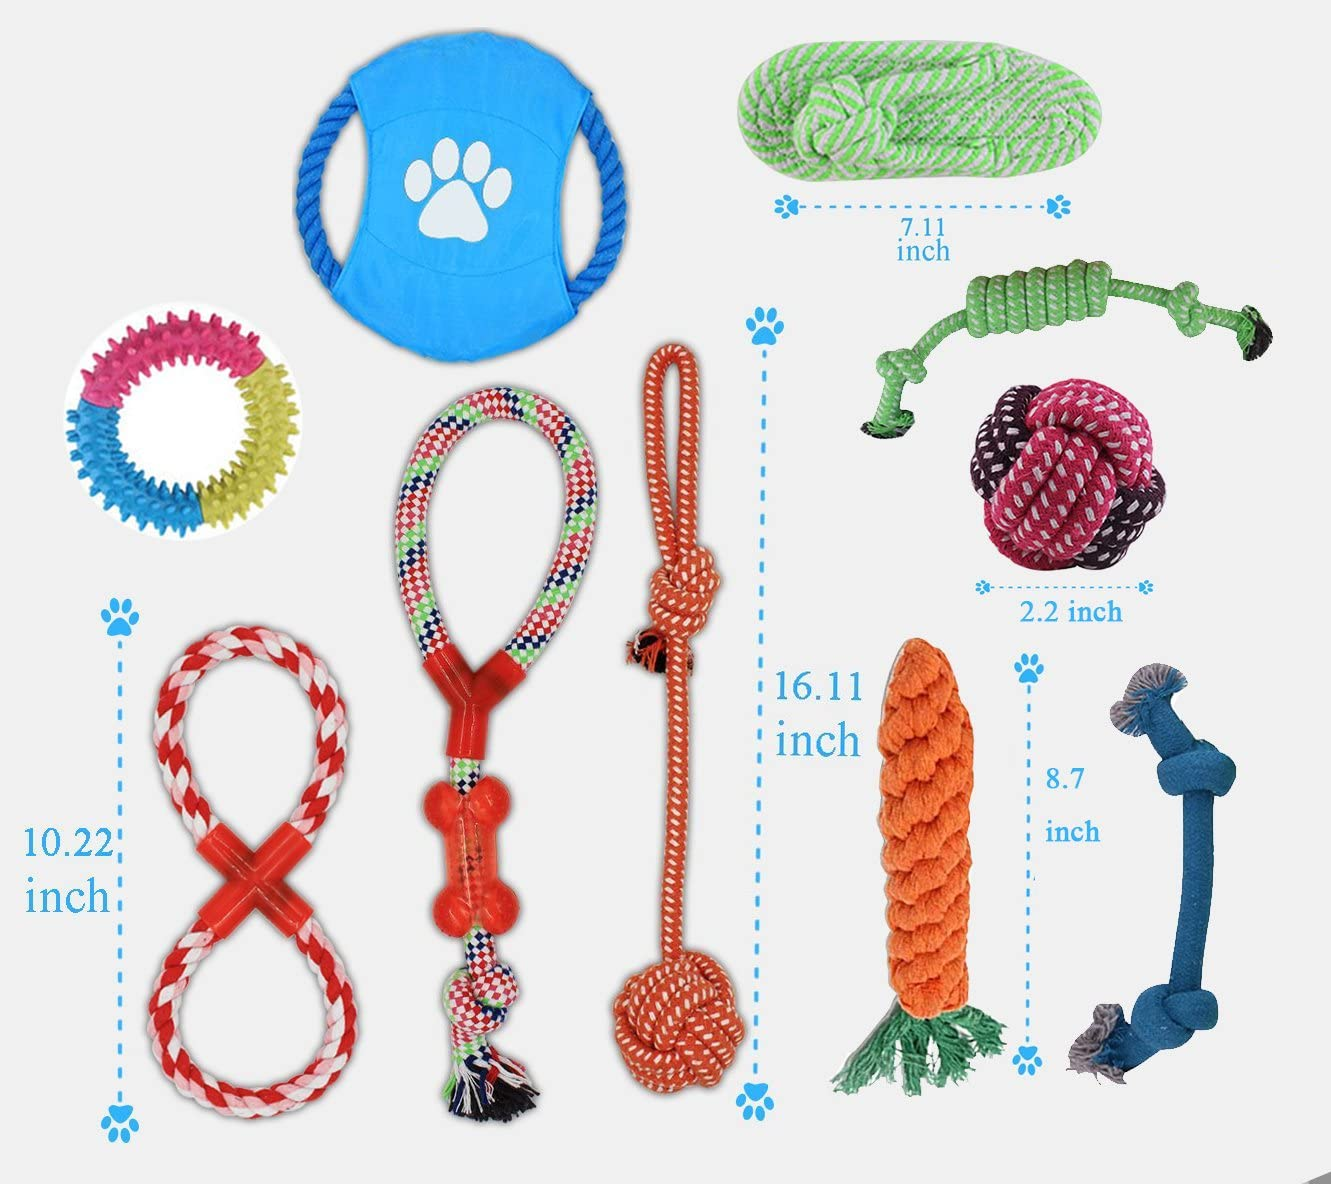 Adoya Dog Rope Toys 10 Pack Puppy Teething Chew Toy for Large Medium Small Dogs Breeds Dog Toy Gift Set